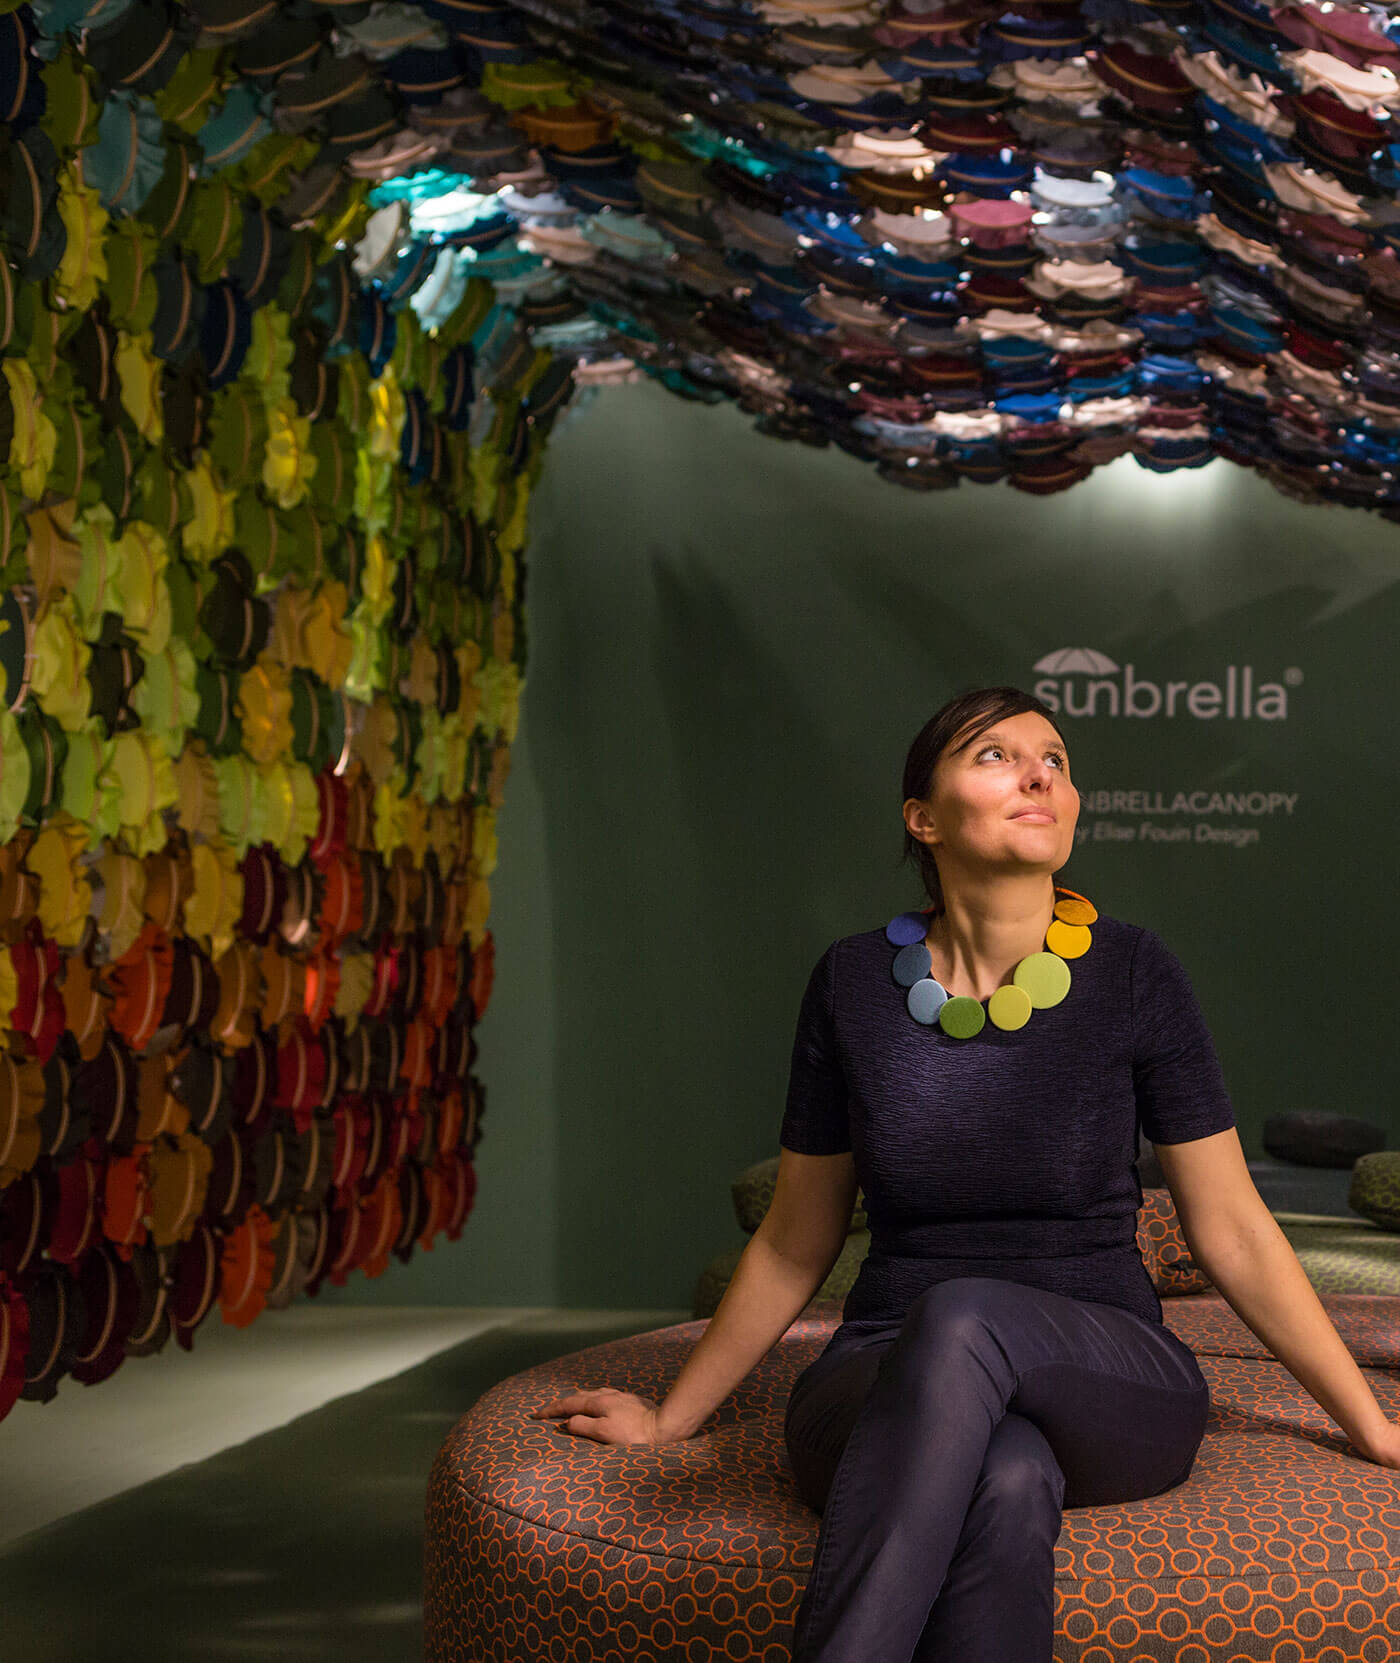 Art installation featuring bright colors of Sunbrella fabrics in interlocking embroidery hoops.